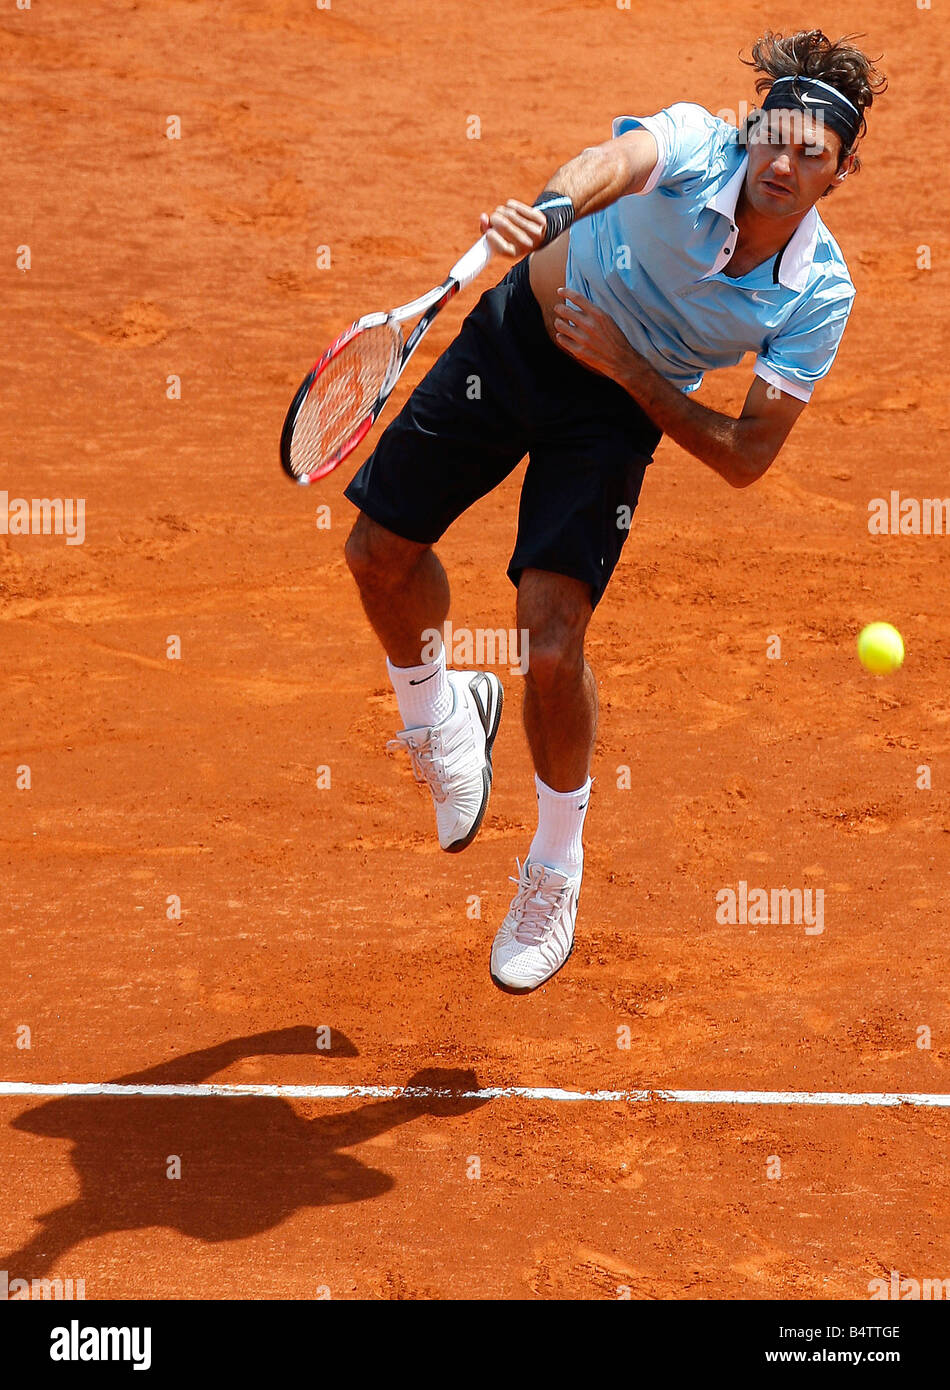 Roger Federer in action against Rafeal Nadel in the Final of the ATP Masters in Monaco 2008. - Stock Image